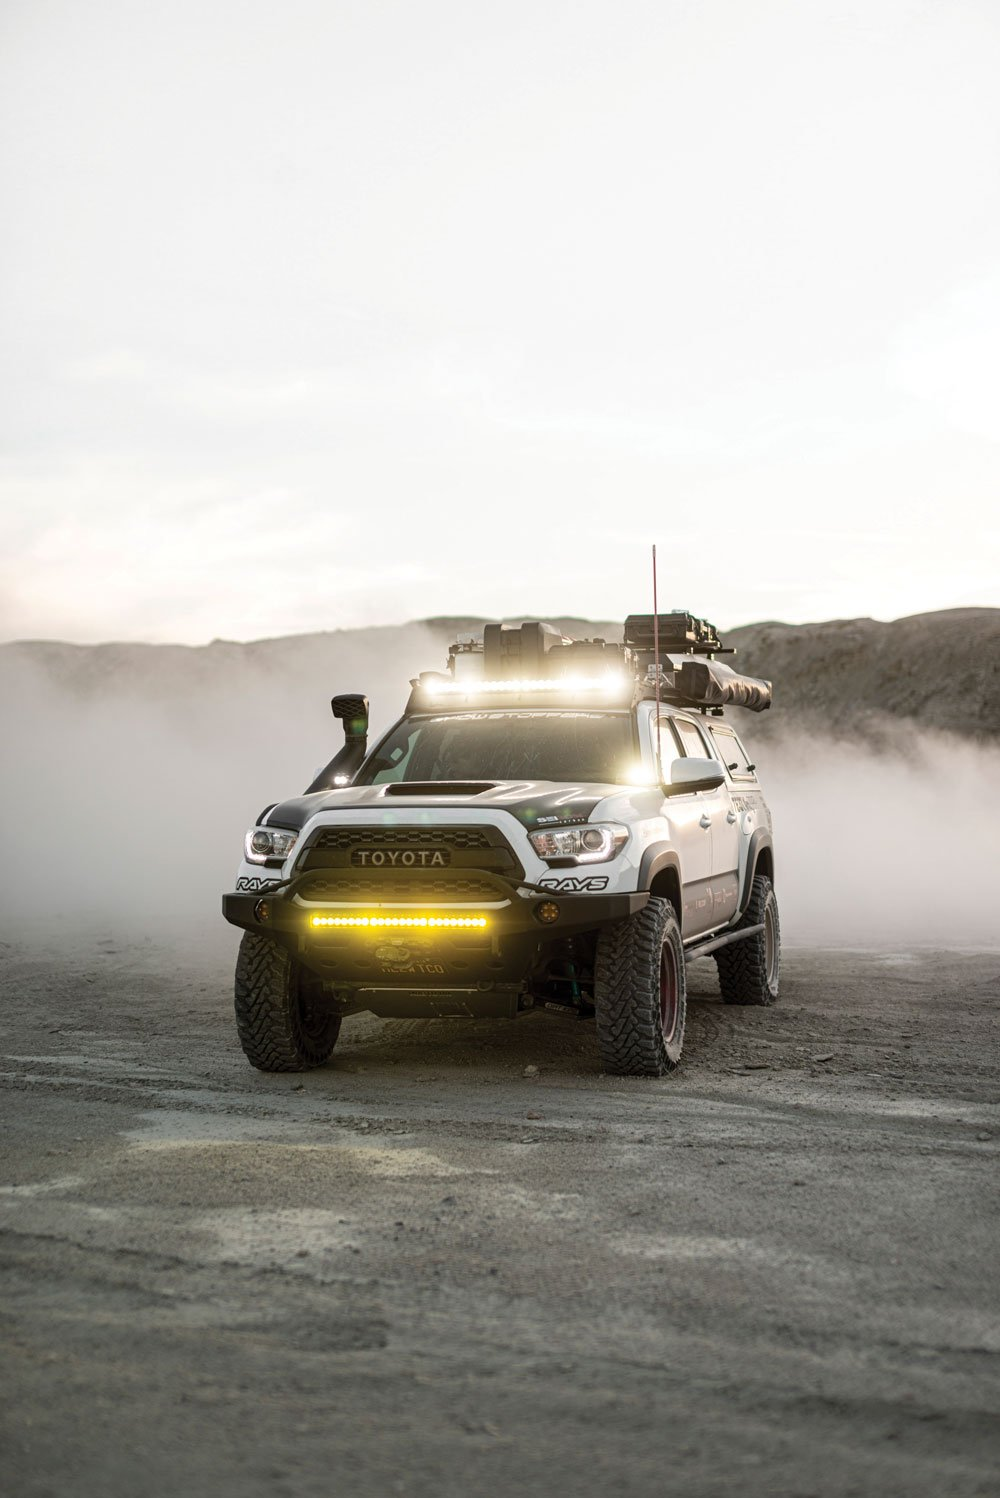 Baja Designs' light coverage in the dark and through the dust